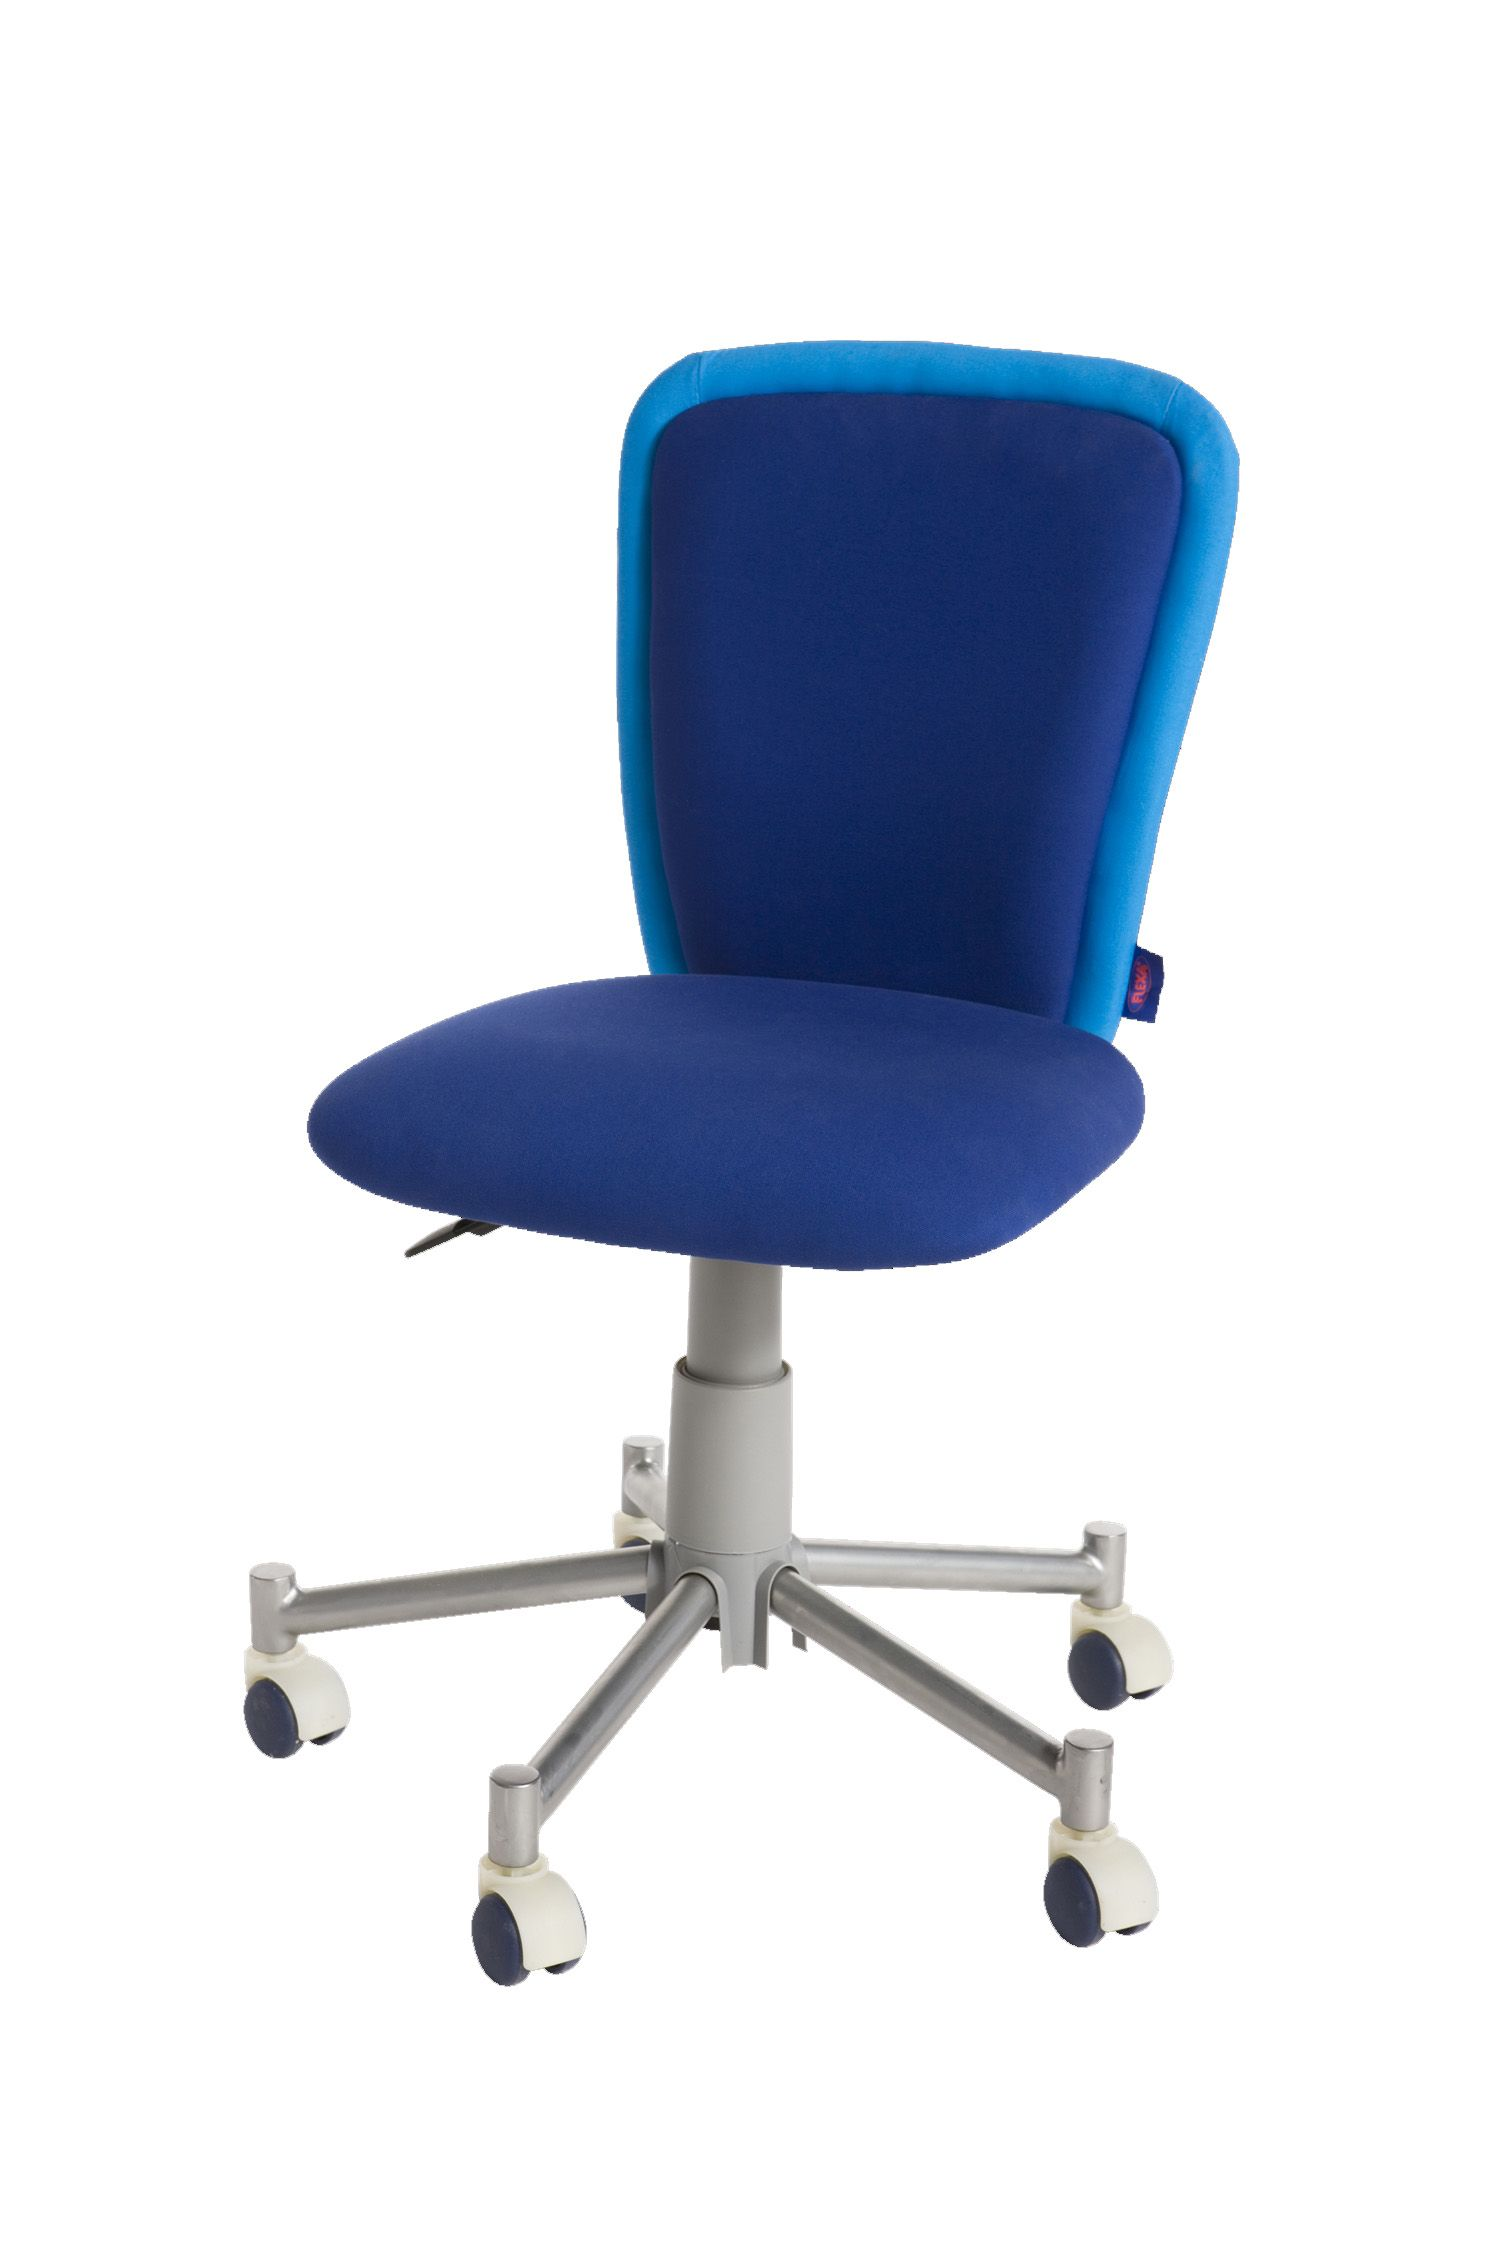 Buy Cheap Office Chair Pink Compare Chairs Prices For Best UK Deals